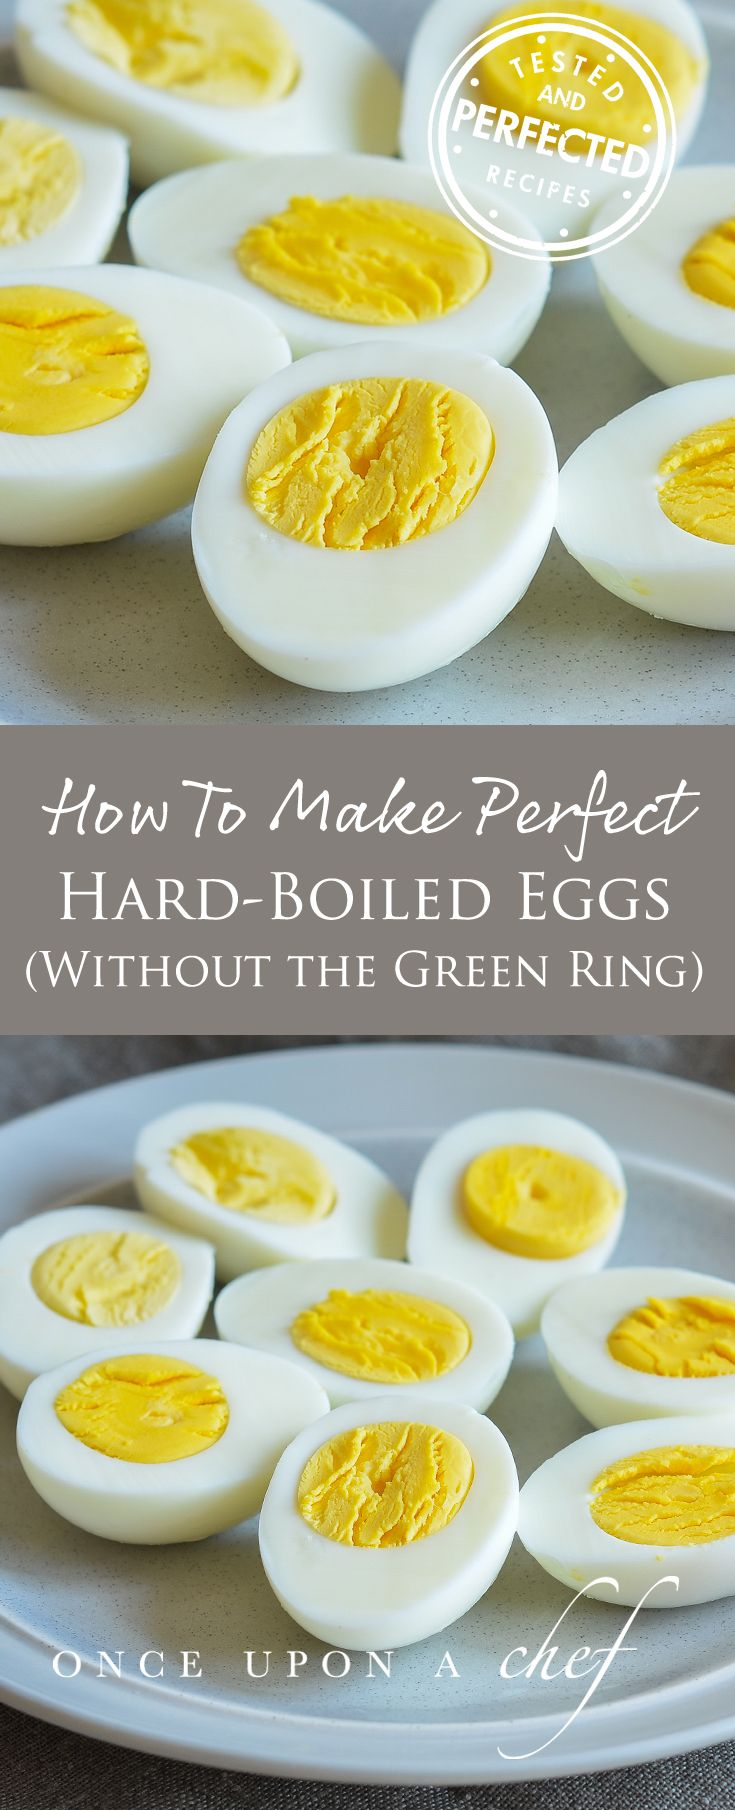 How To Make Perfect Hard-Boiled Eggs - Once Upon a Chef